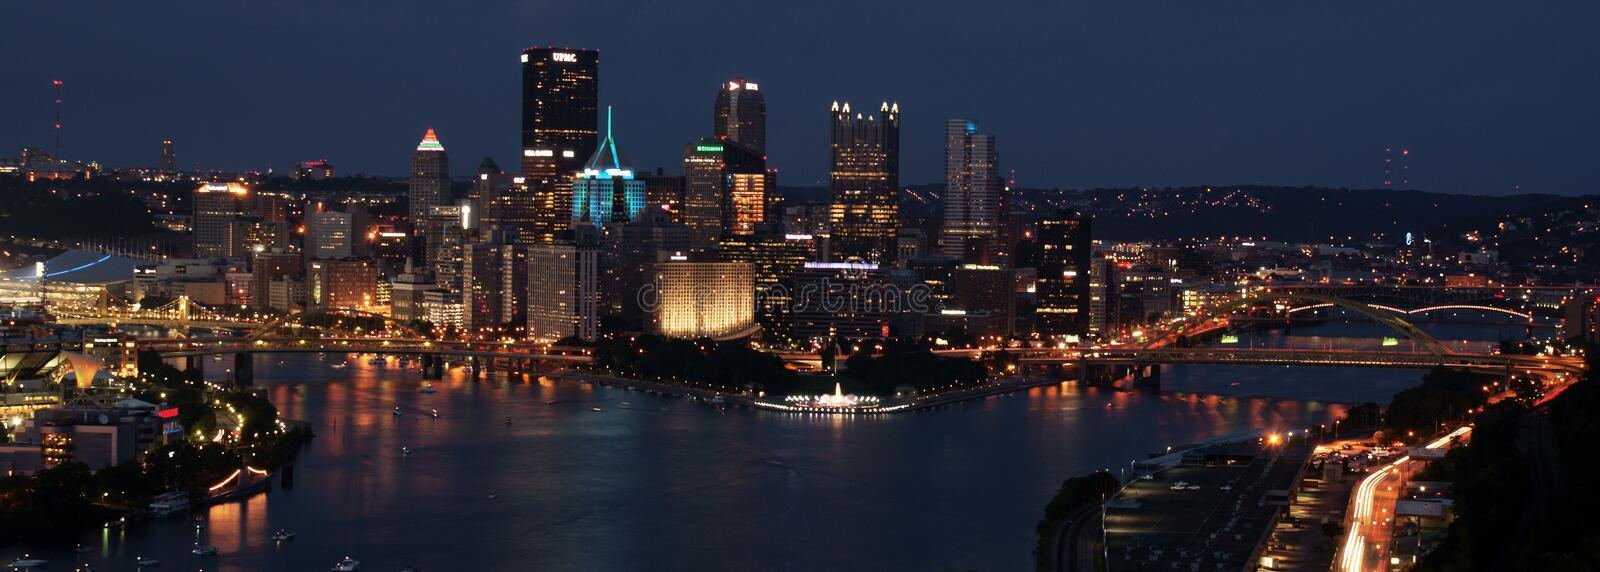 Pittsburgh downtown at night royalty free stock photos